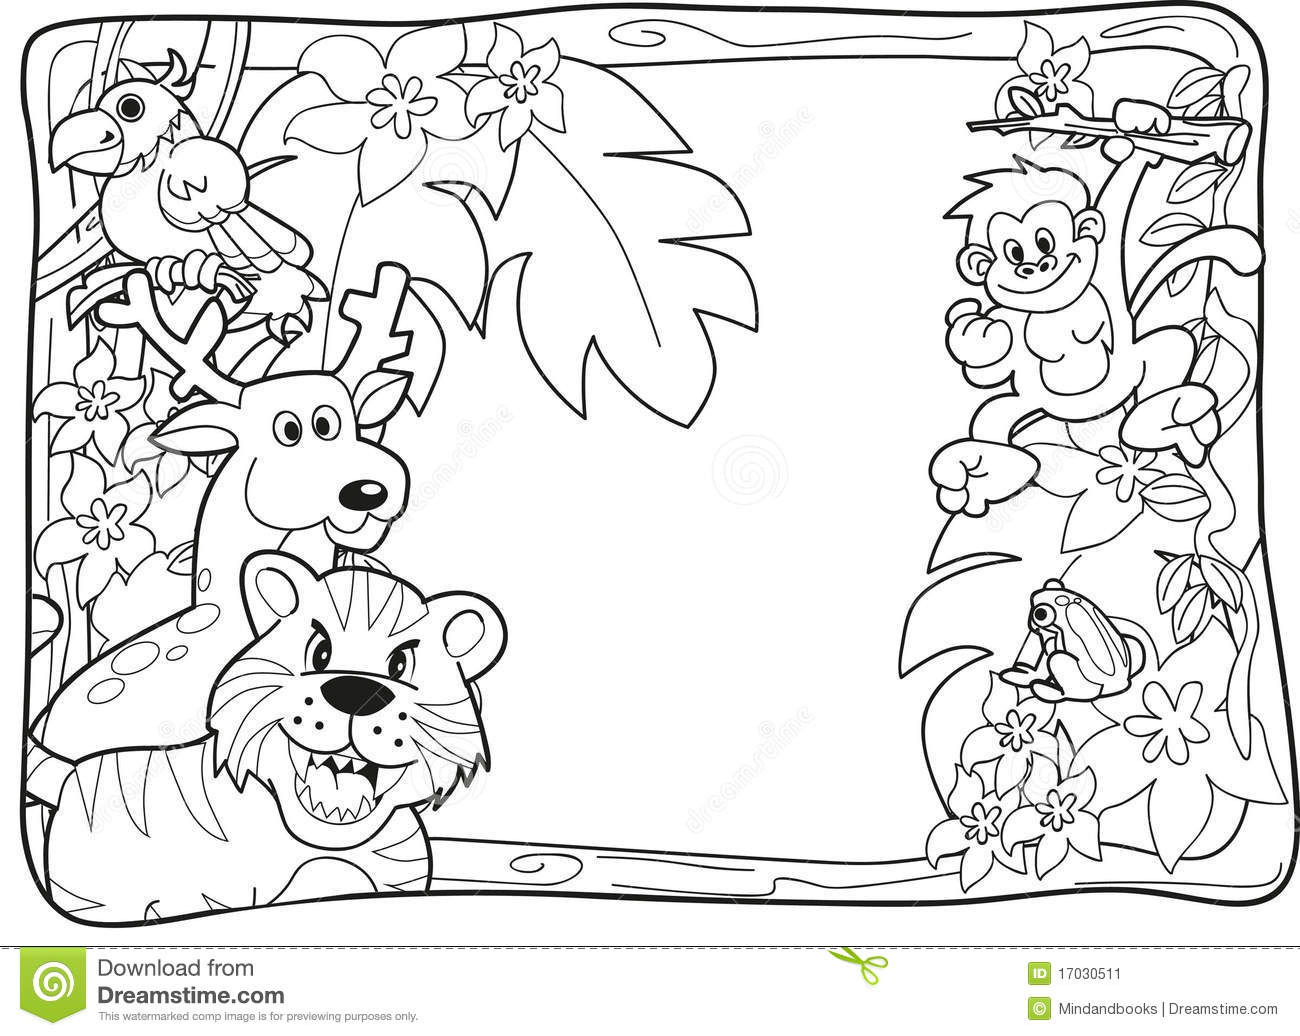 cute jungle coloring pages jungle animal coloring pages to download and print for free jungle coloring pages cute